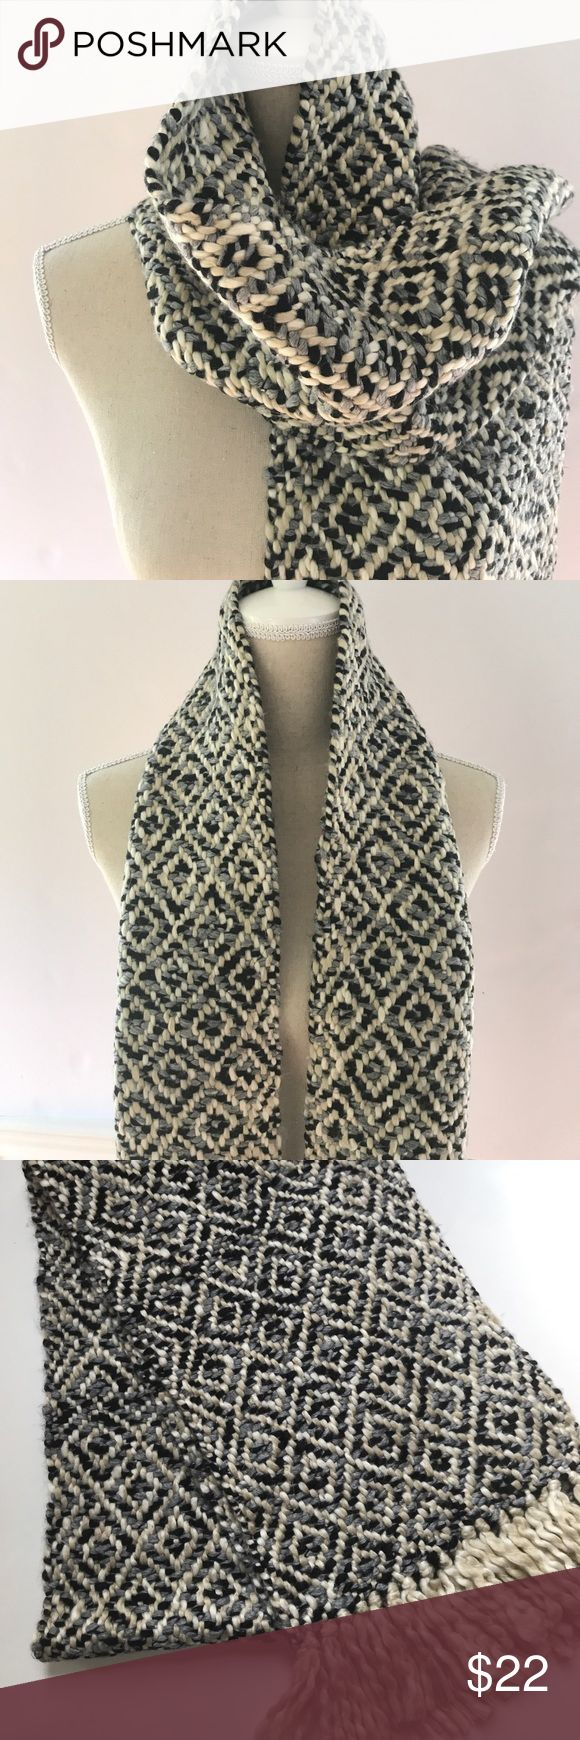 """Loft Scarf Ann Taylor Loft Scarf Black, Gray, and Cream colored with Cream Tassles on each end. Measures 73"""" long x 9.5"""" wide. Heavy duty Scarf would pair well with winter jacket or sweater. Never Worn LOFT Accessories Scarves & Wraps"""